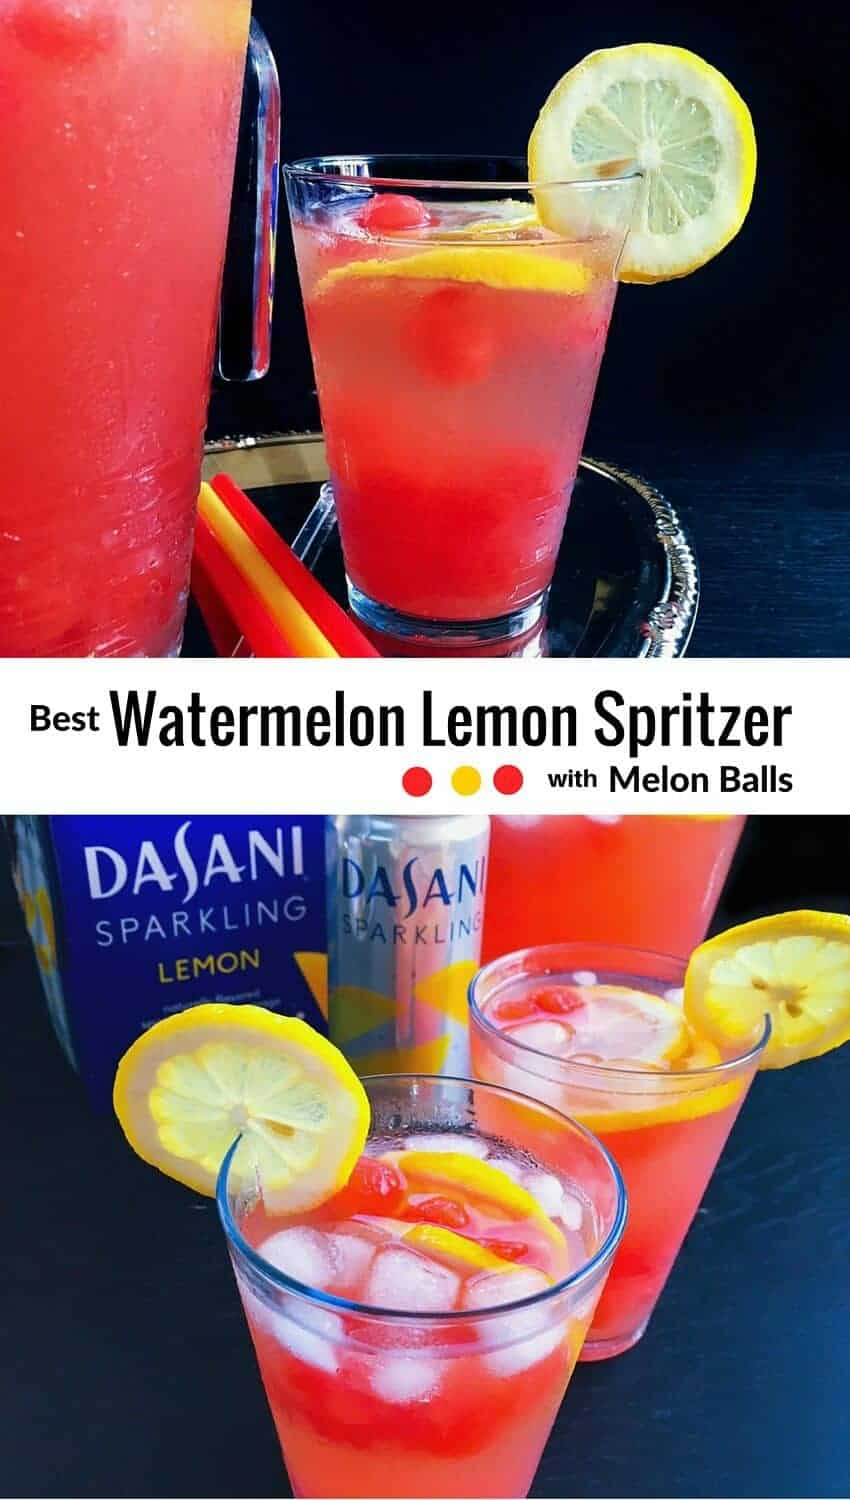 Best Watermelon Lemon Spritzer with Melon Balls : #ad